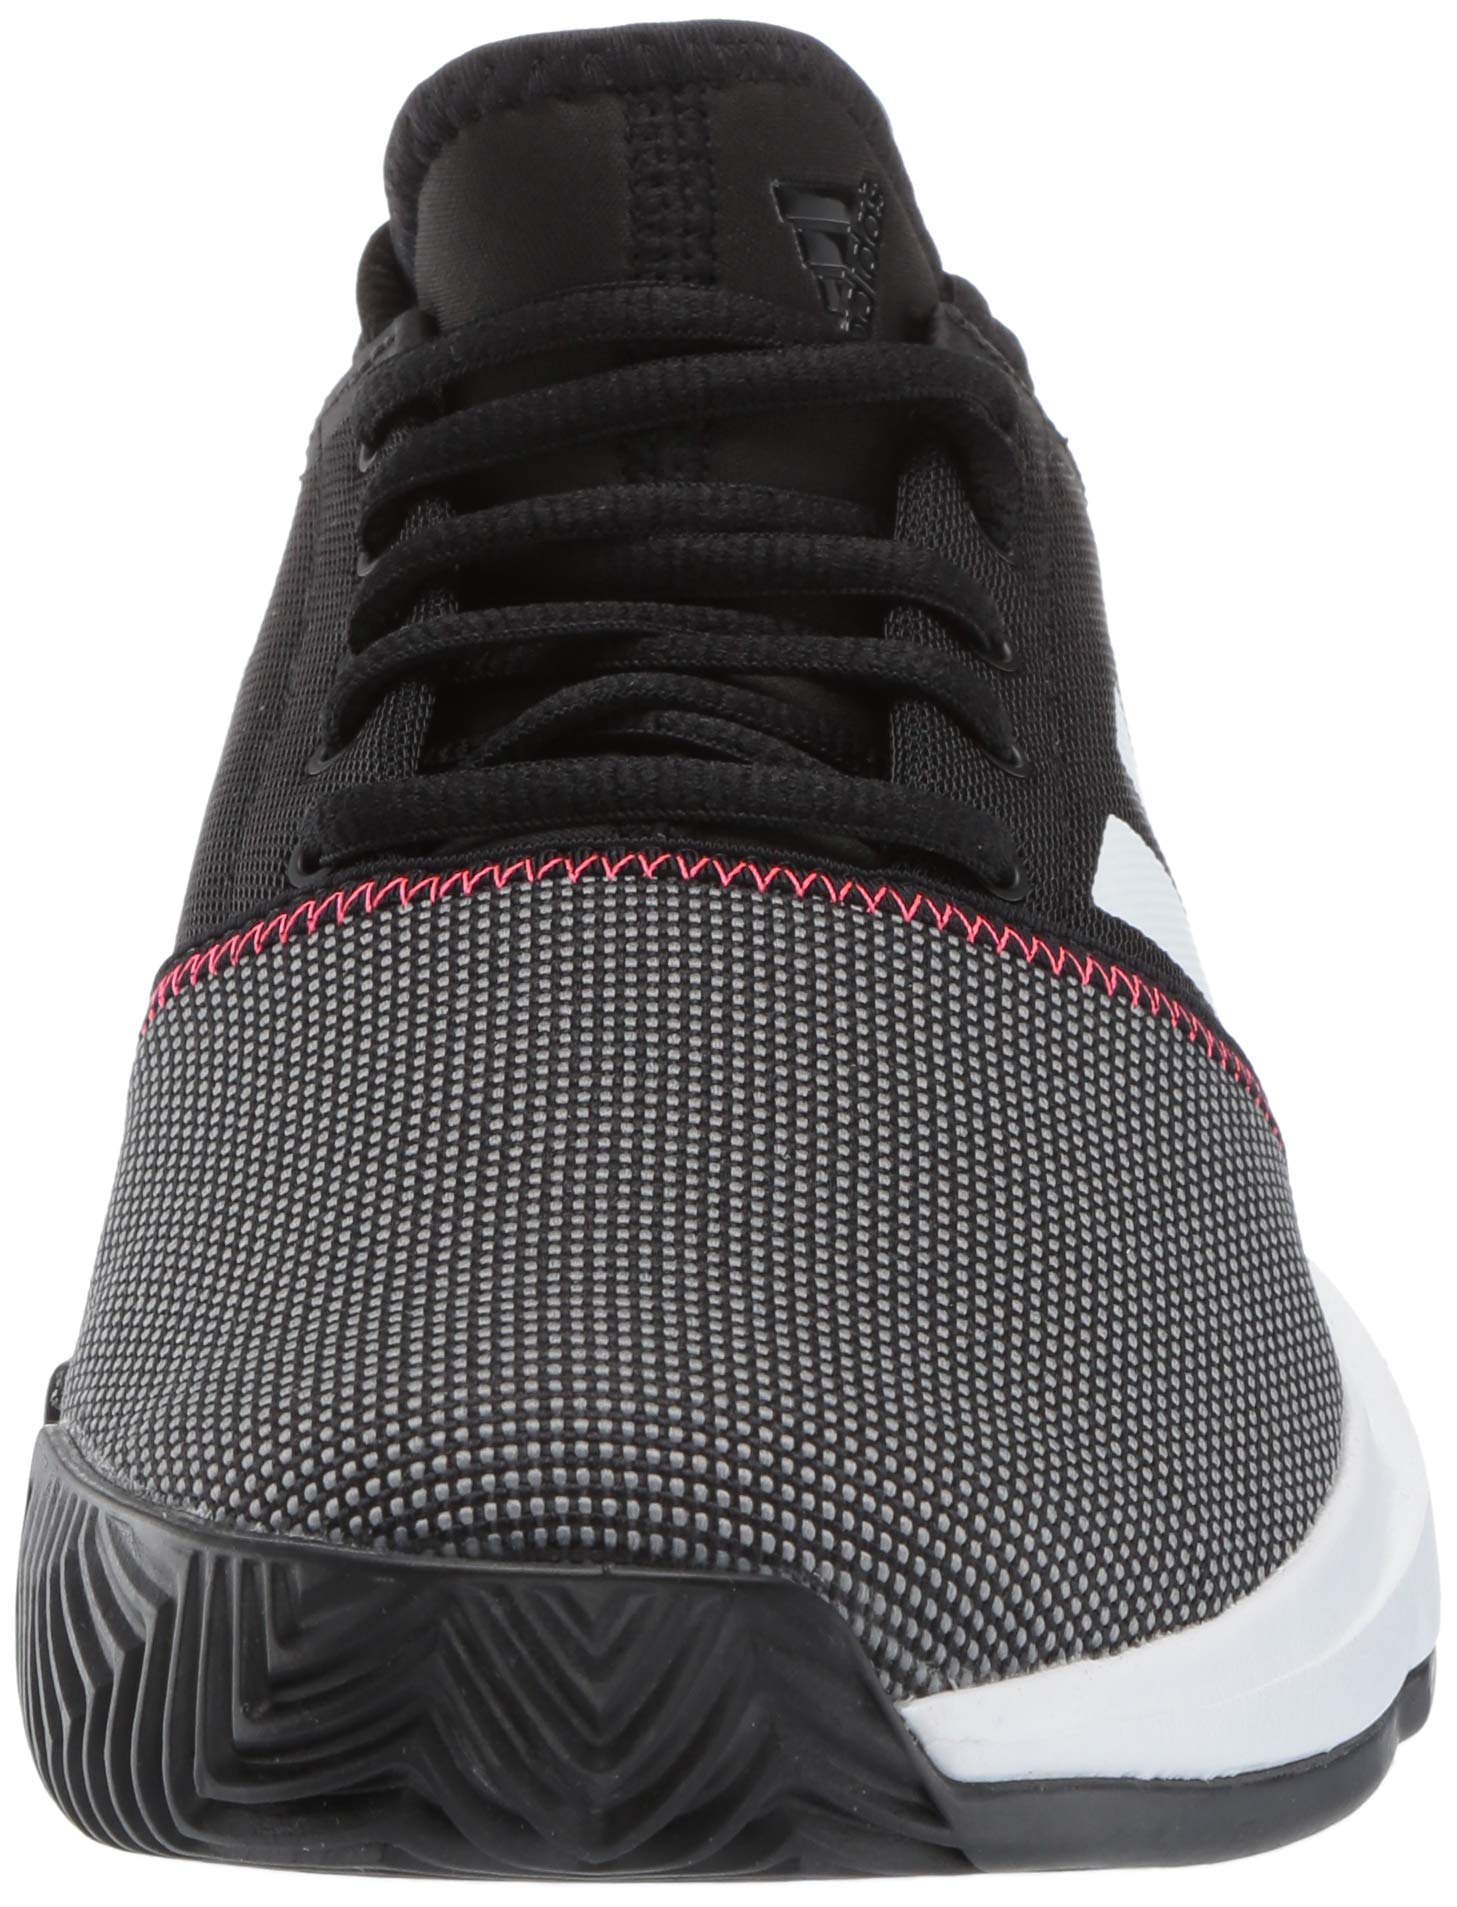 adidas Men's Gamecourt, Black/White/Shock red, 6.5 M US by adidas (Image #4)